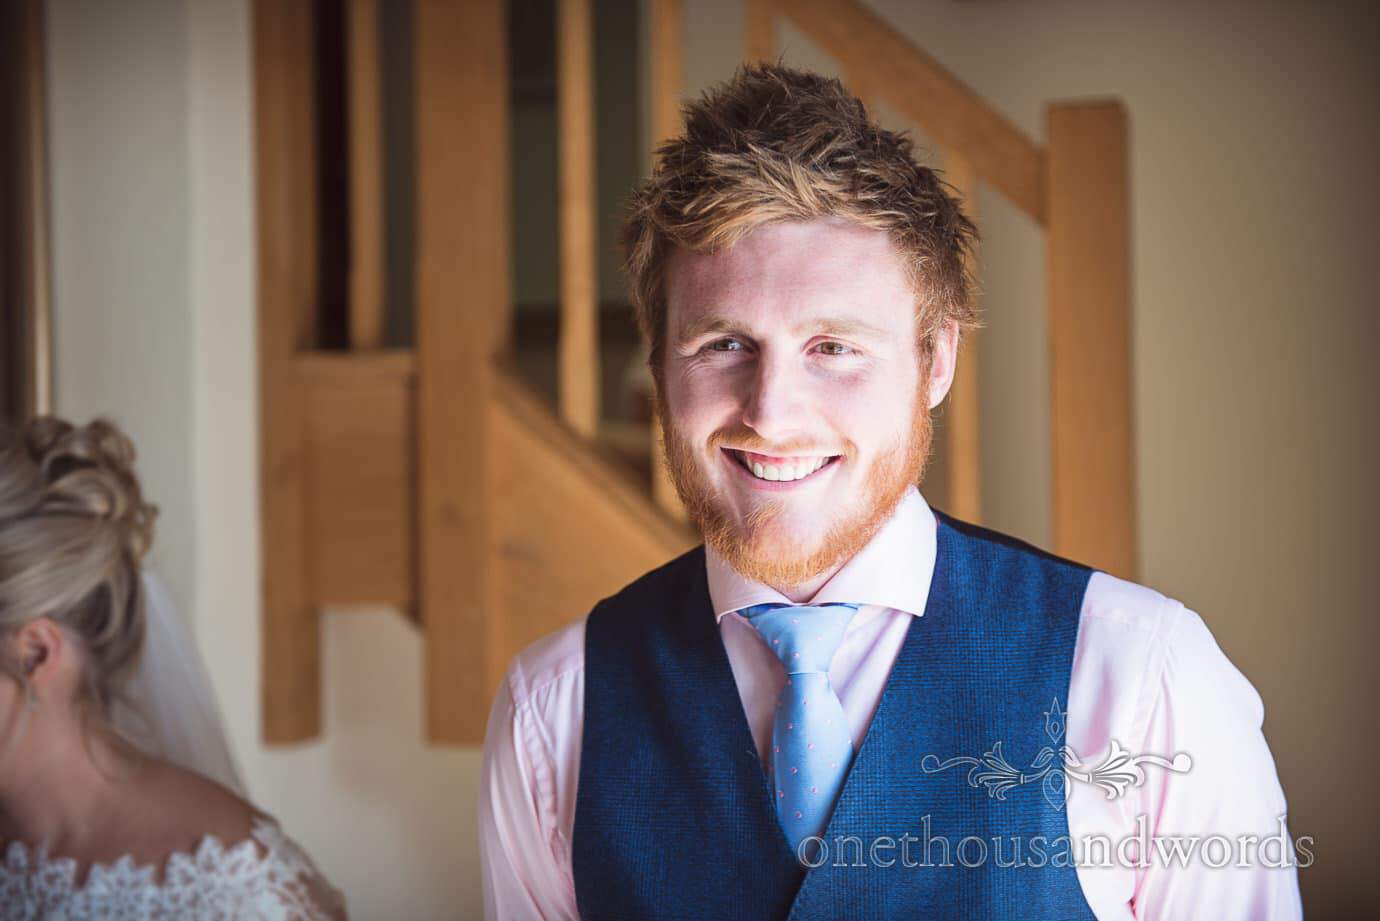 Bearded groom with pink shirt and blue waistcoat smiles during receiving line